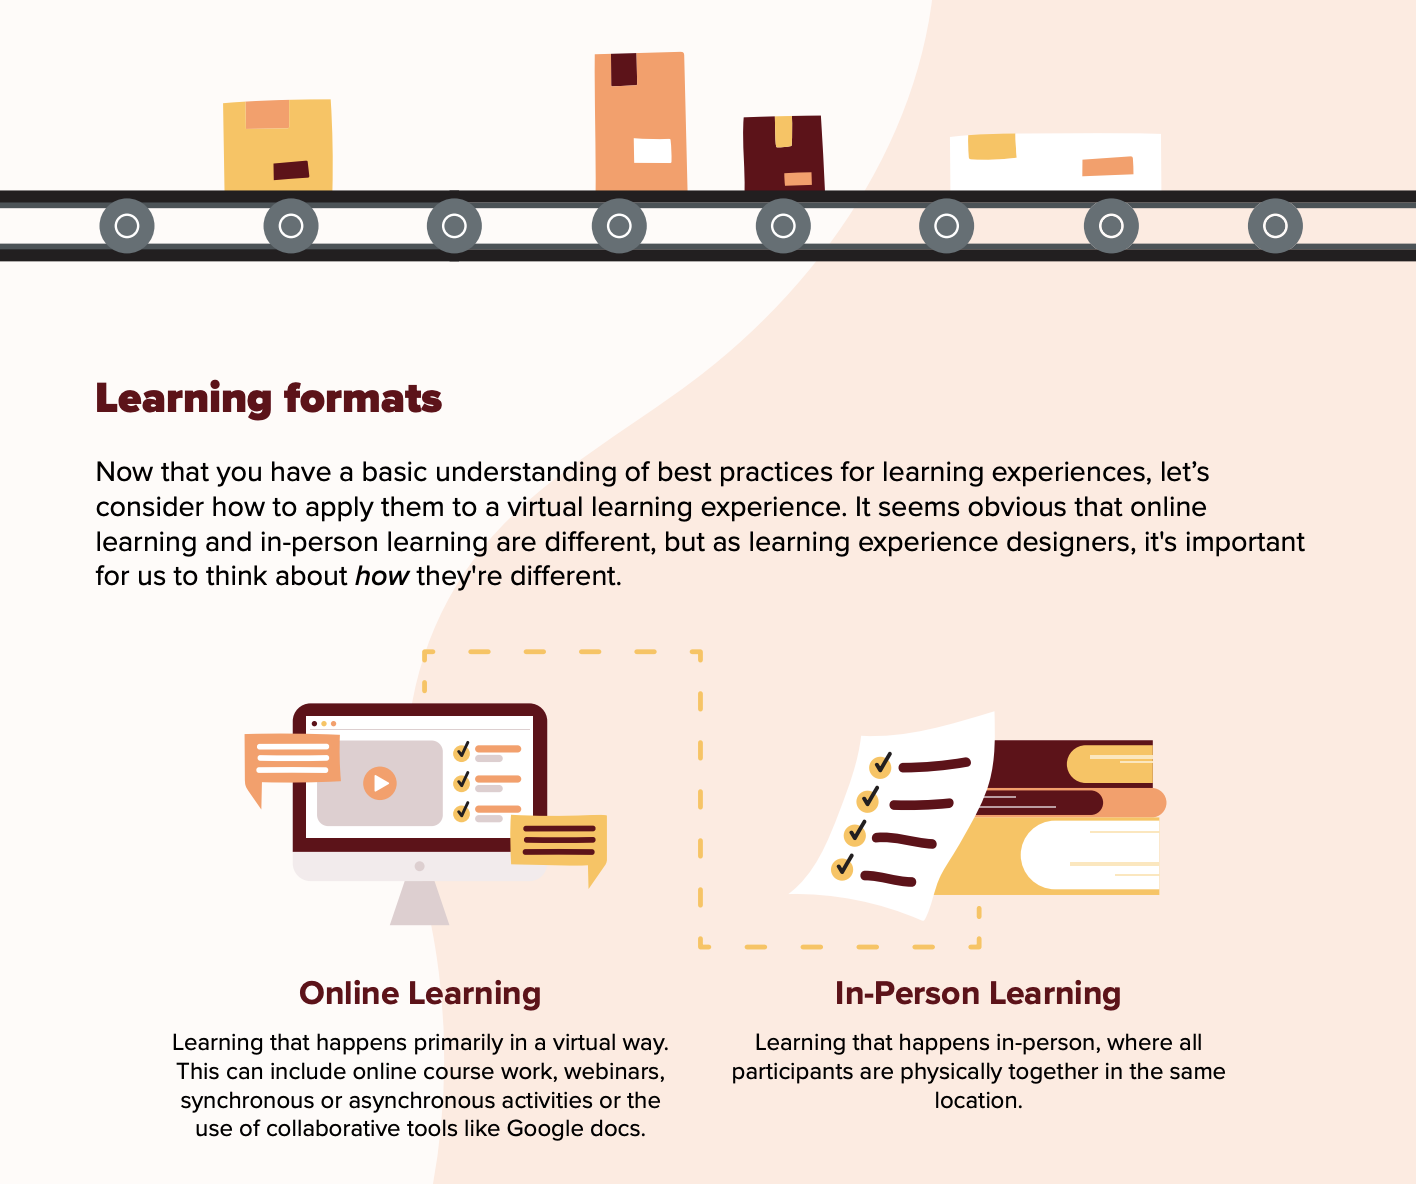 Image detailing the difference between online learning and in-person learning